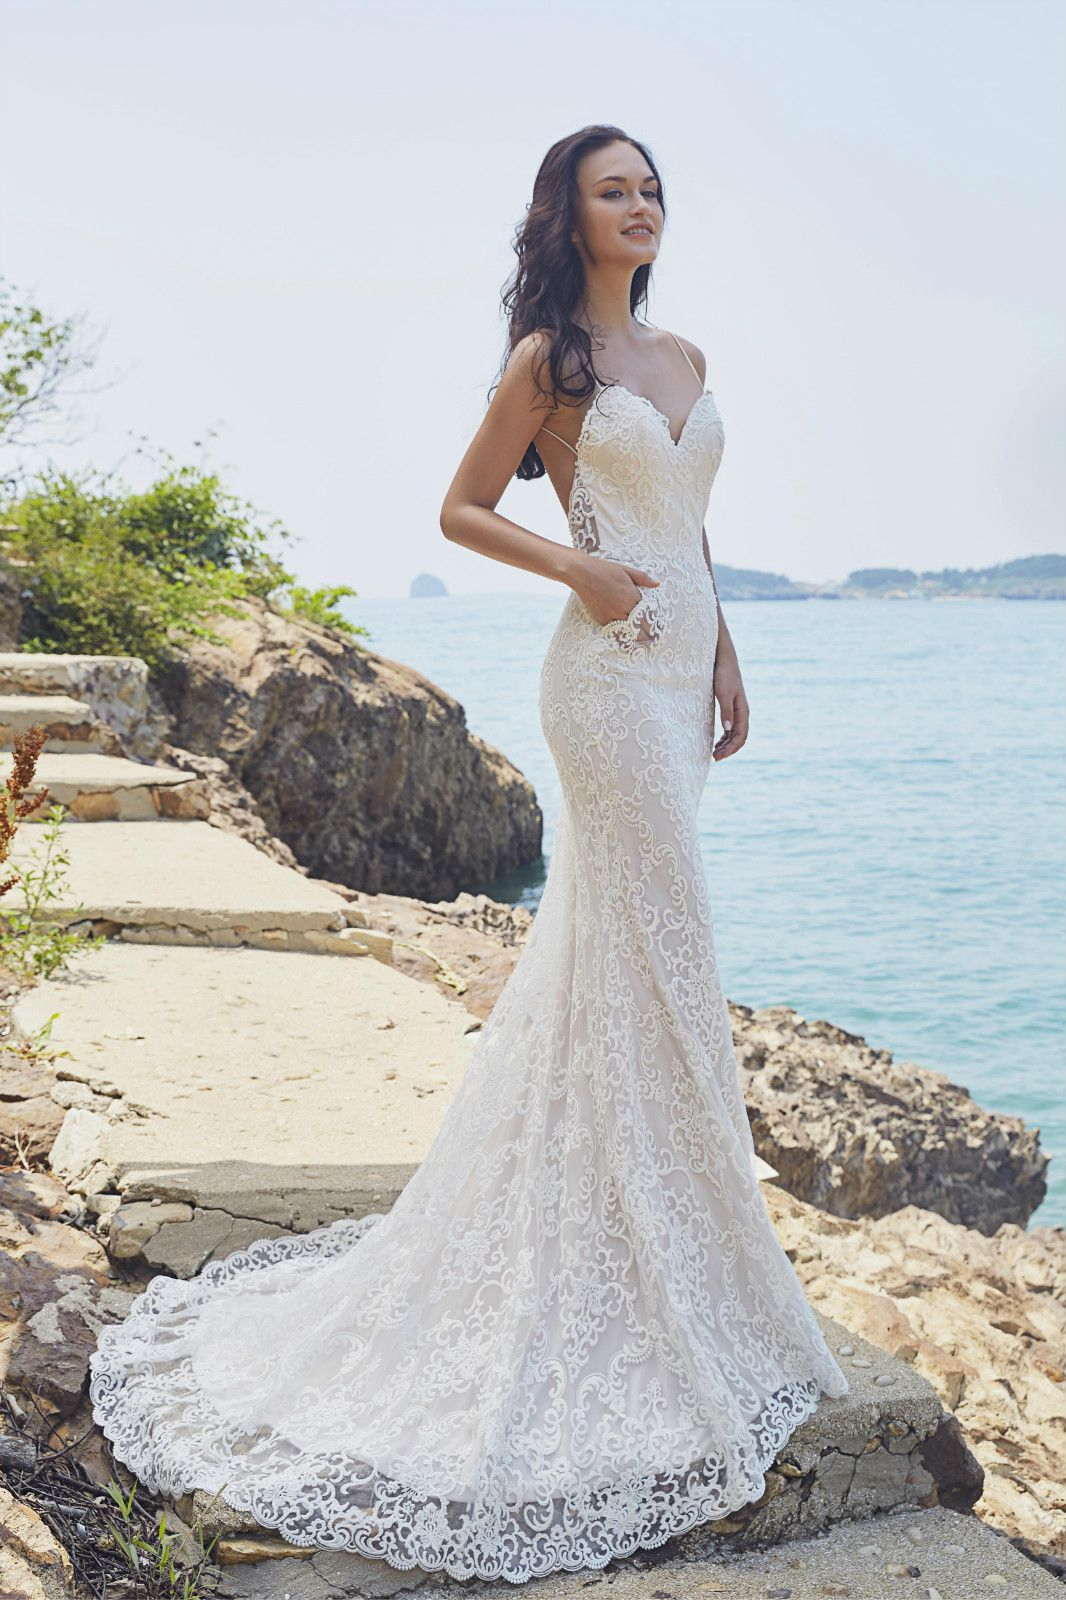 Lennox - BRIDAL - Chic Nostalgia - Chic Nostalgia | A Dress for ...